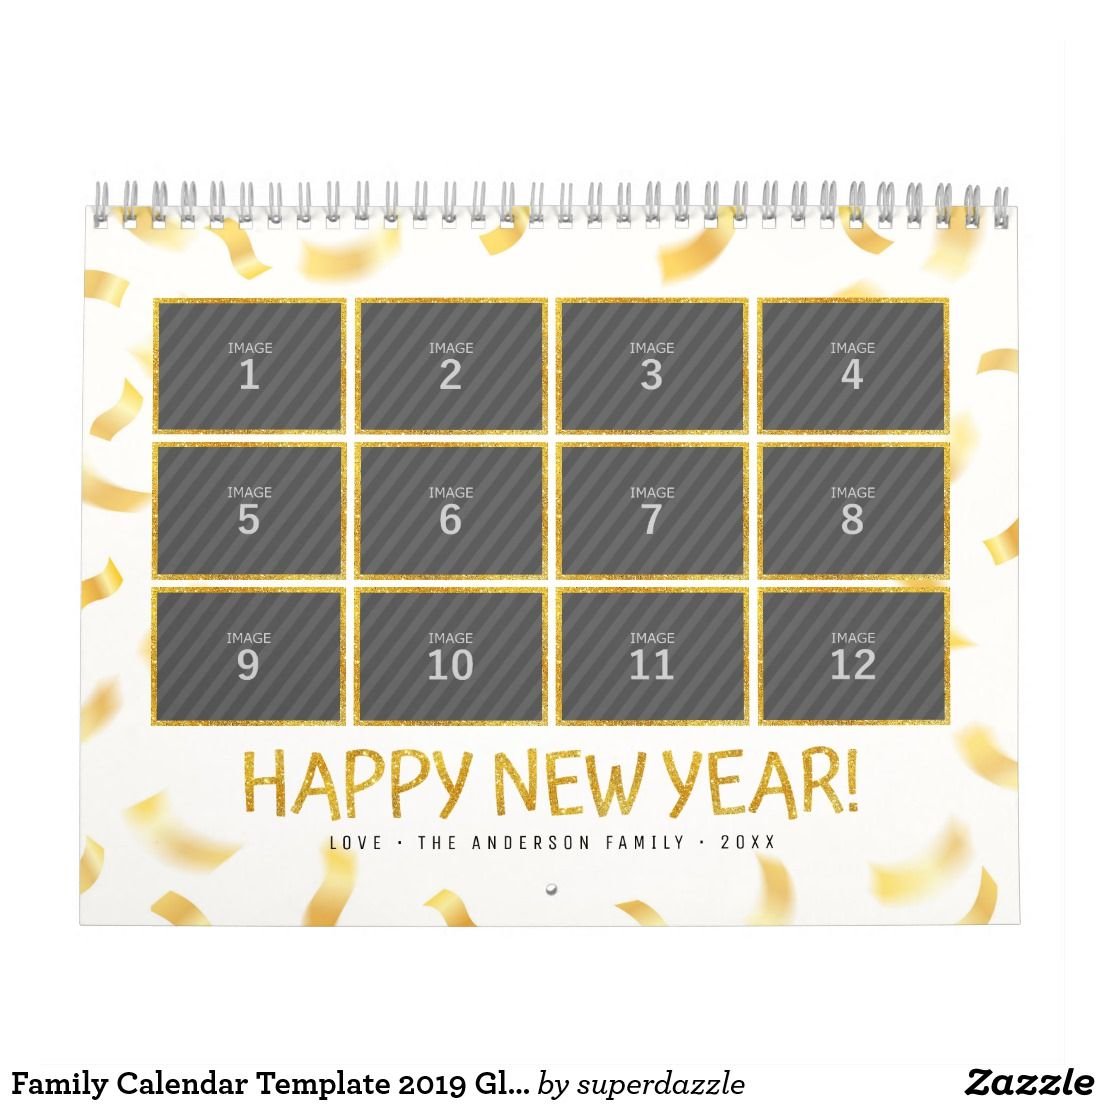 Family Calendar Template 2019 Glitter Custom Photo | Zazzle